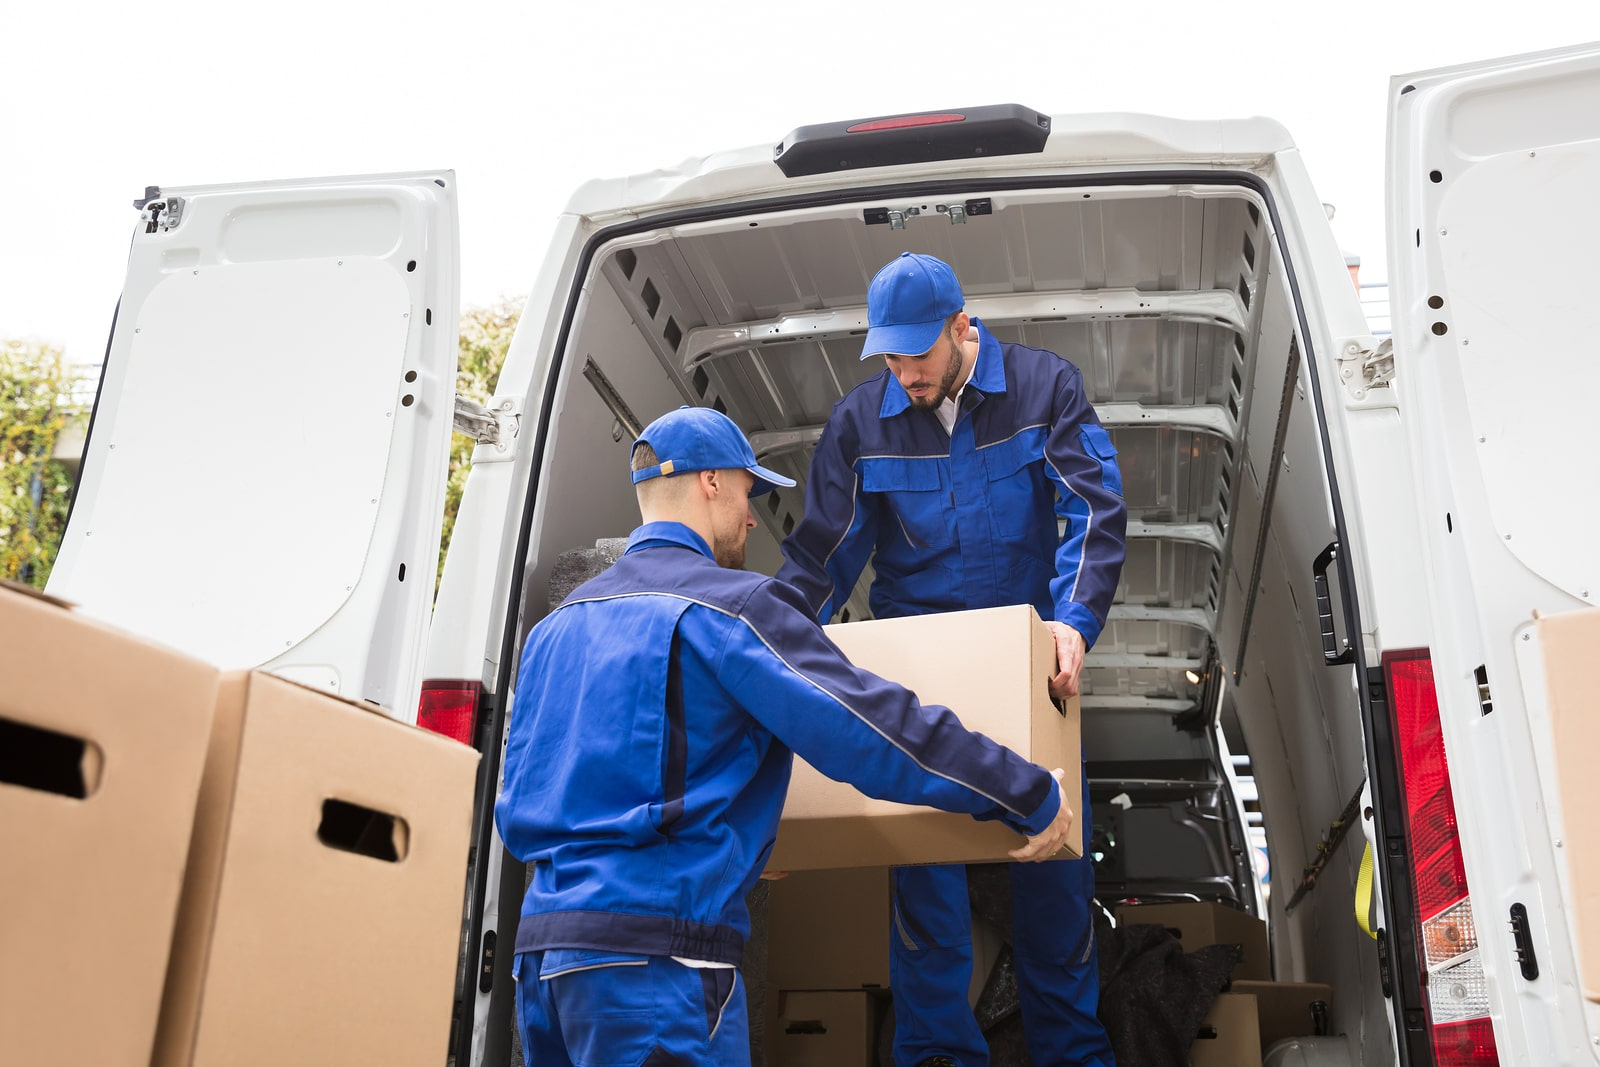 Hire a Professional Shifting Company to Move Effortlessly